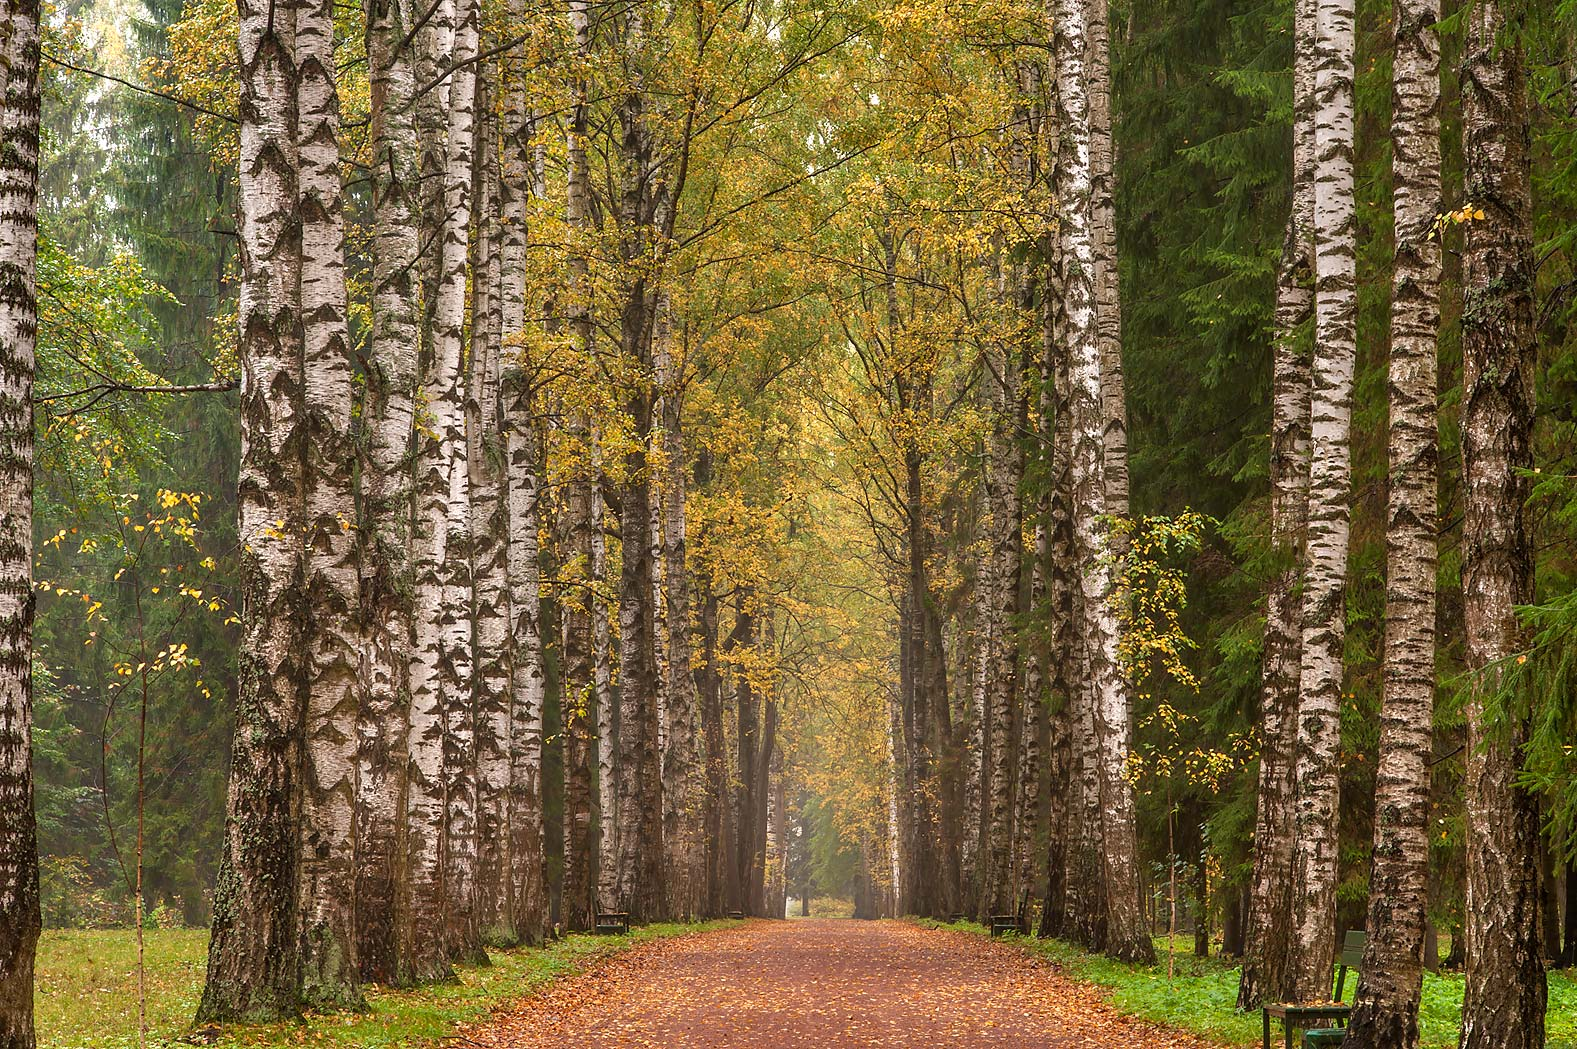 Birch trees of Krasnodolinnaya Alley in Pavlovsk Park. Pavlovsk, suburb of St.Petersburg